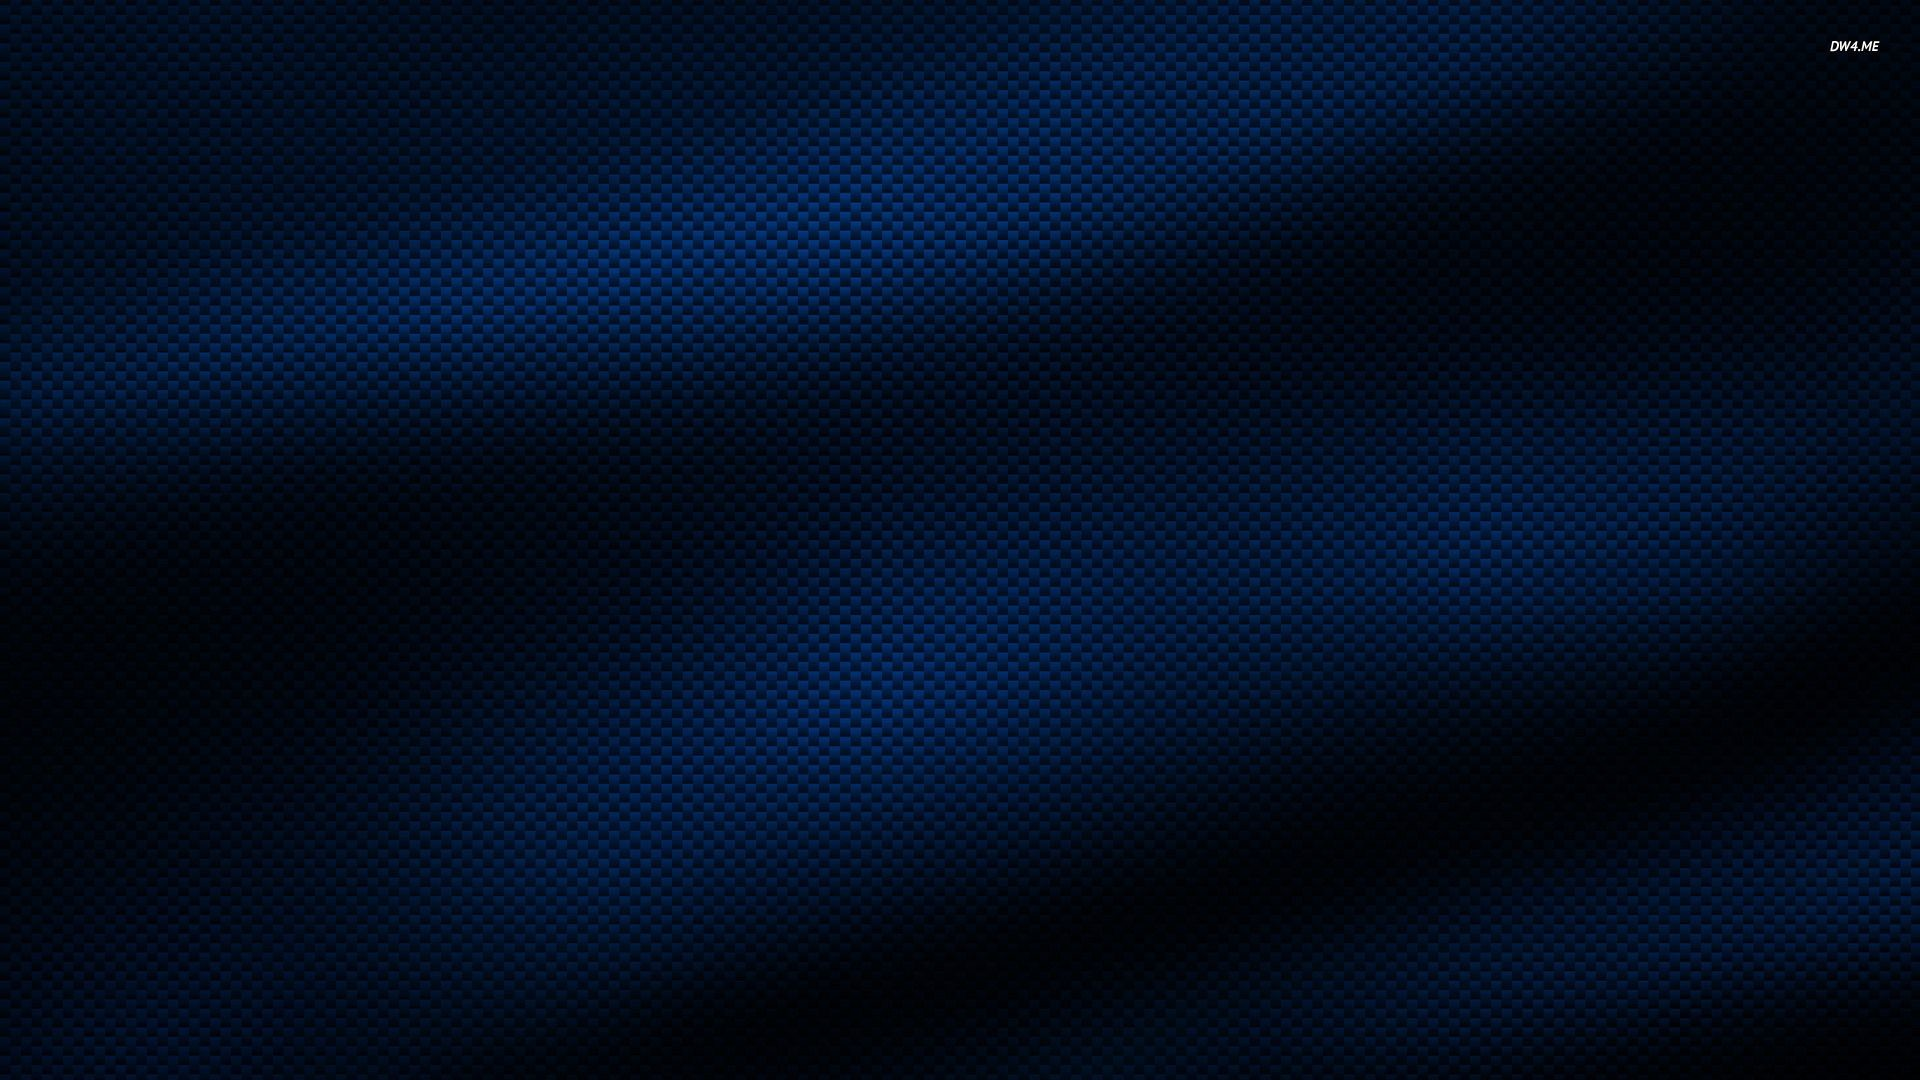 Carbon fiber fabric wallpaper – Abstract wallpapers – #869